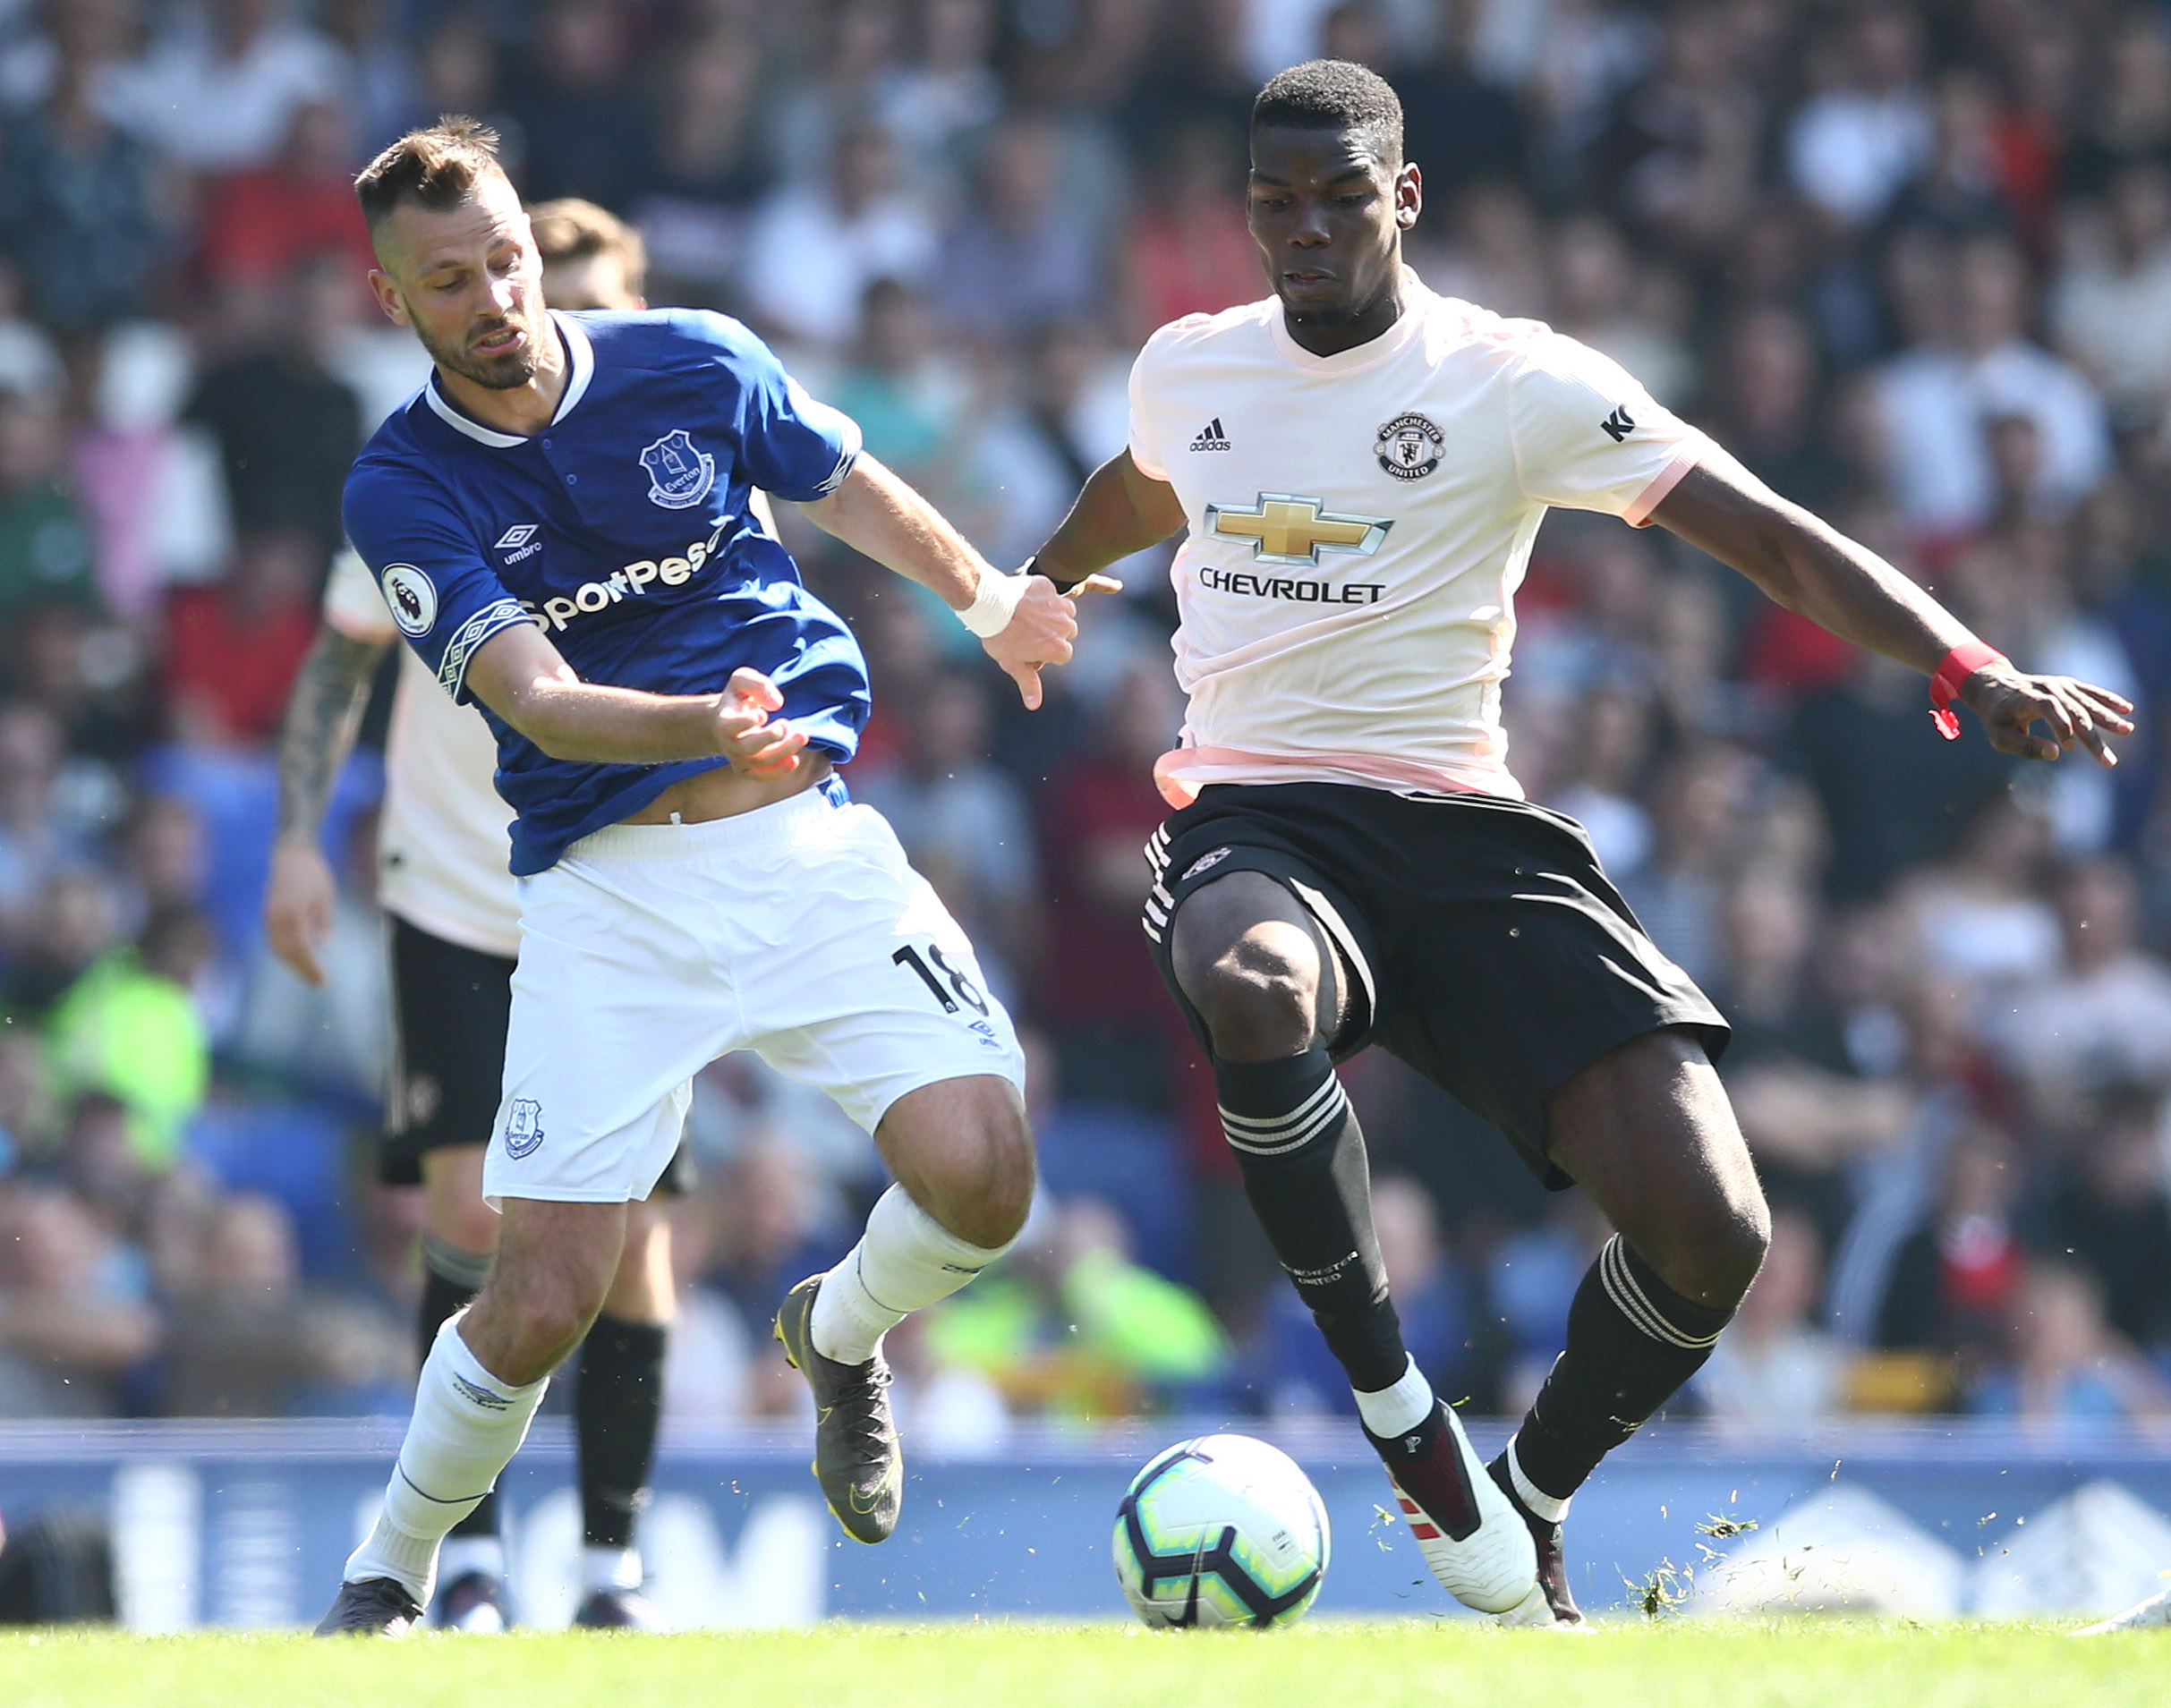 Morgan Schneiderlin should have a place in Everton's future